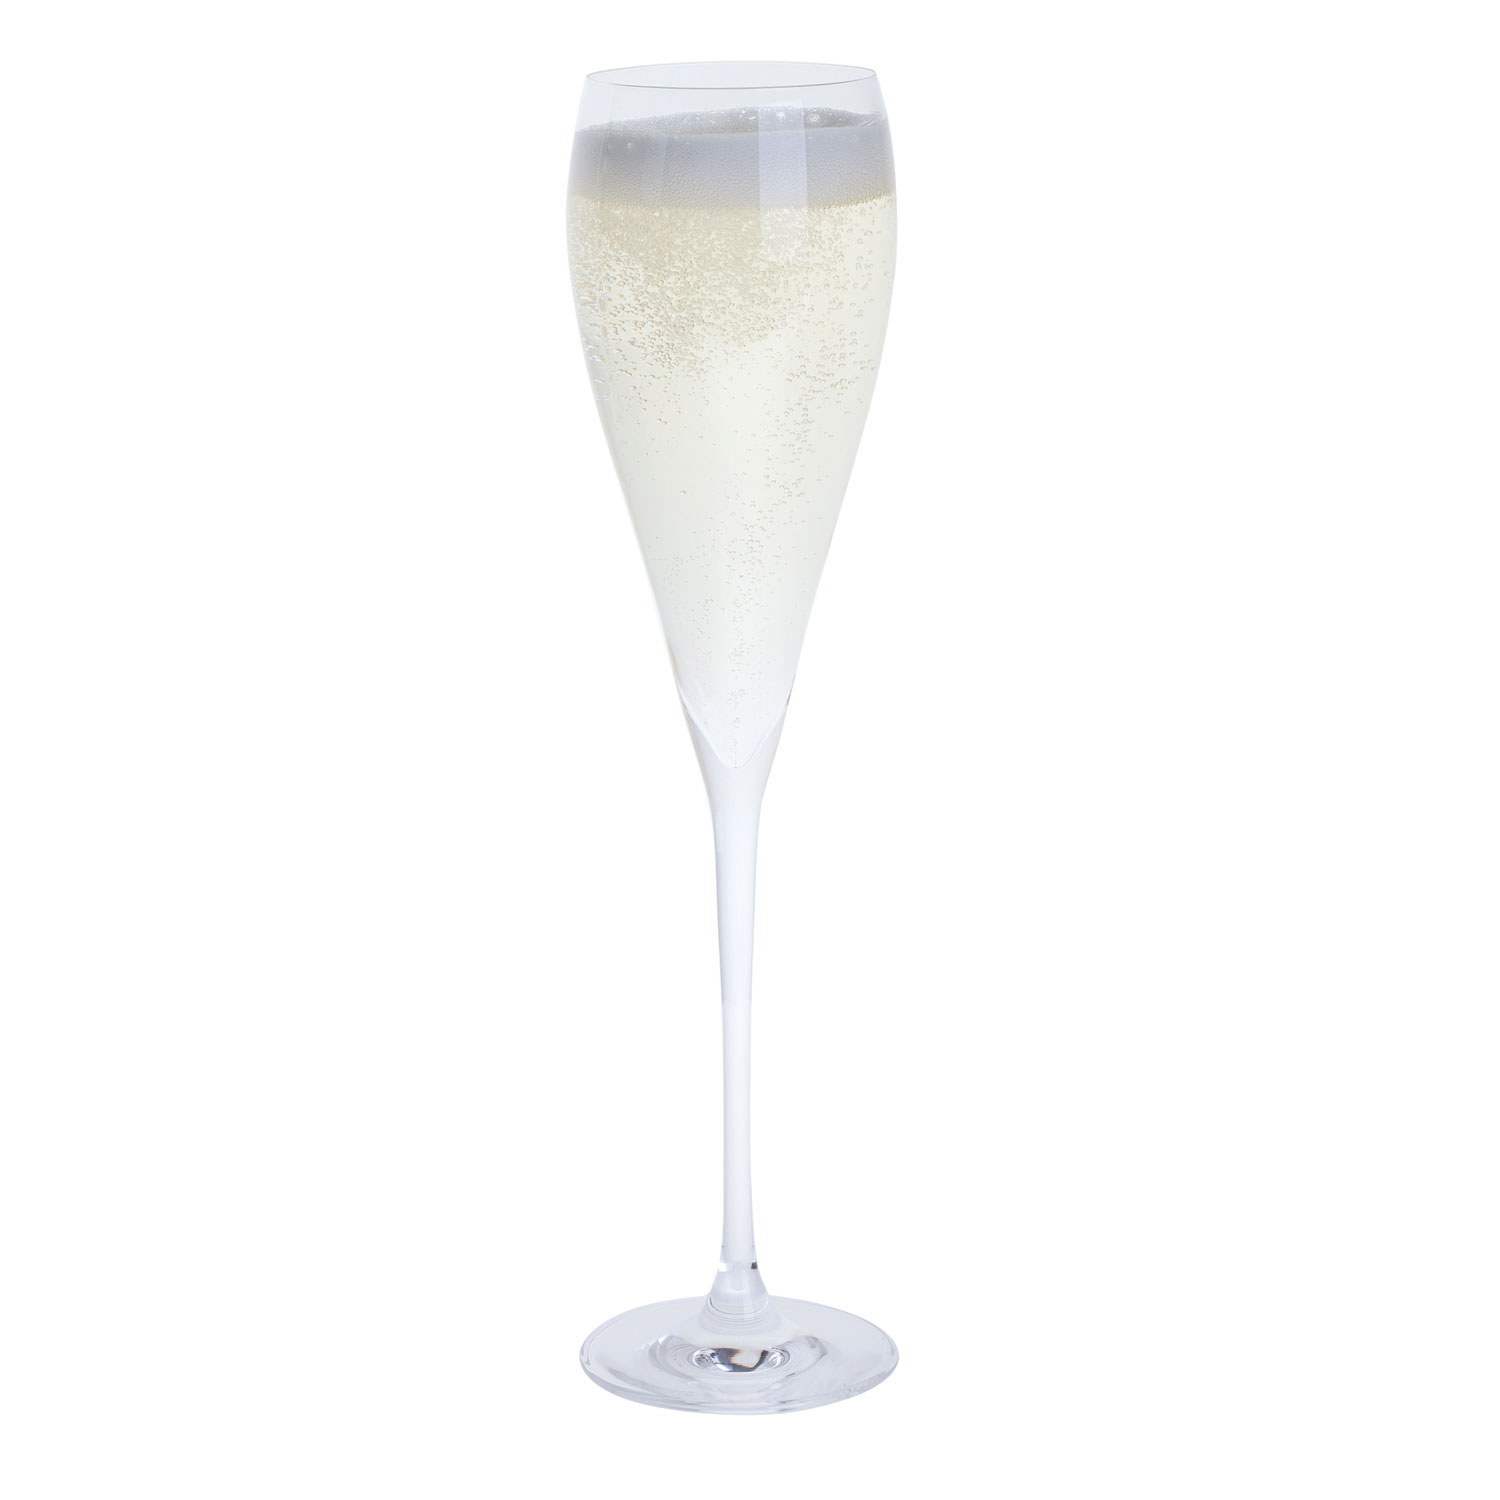 Image of Dartington Crystal Just The One Prosecco Glass, Clear